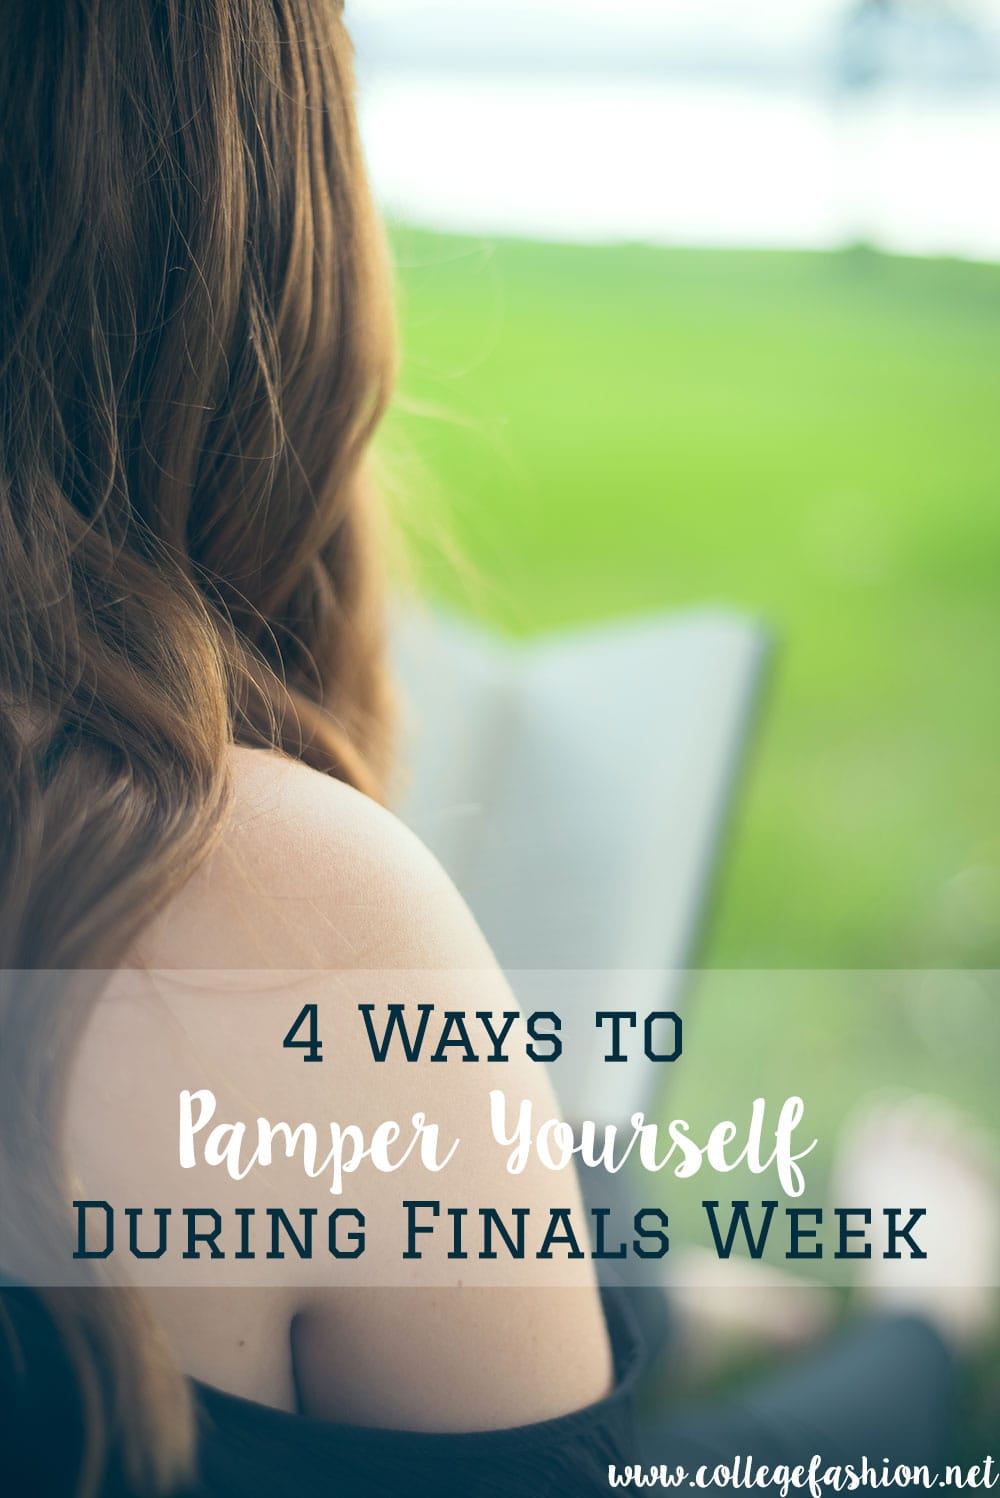 4 ways to pamper yourself during finals week